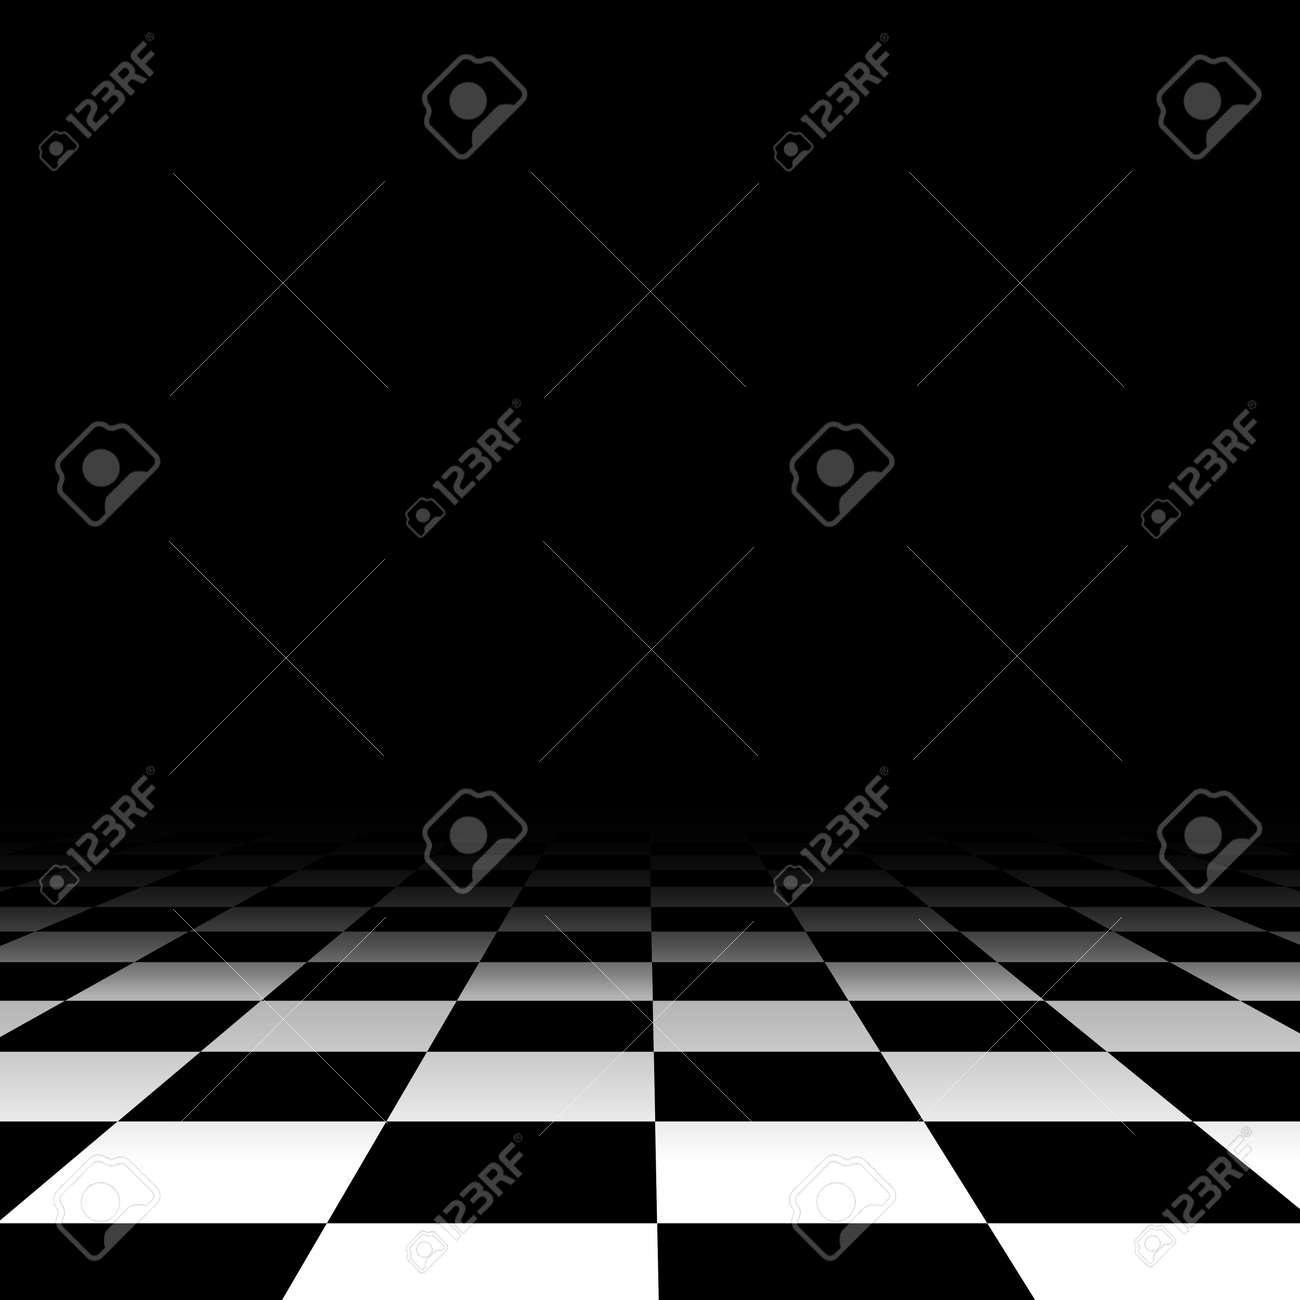 Black and white chess floor background empty. Vector illustration - 166831117